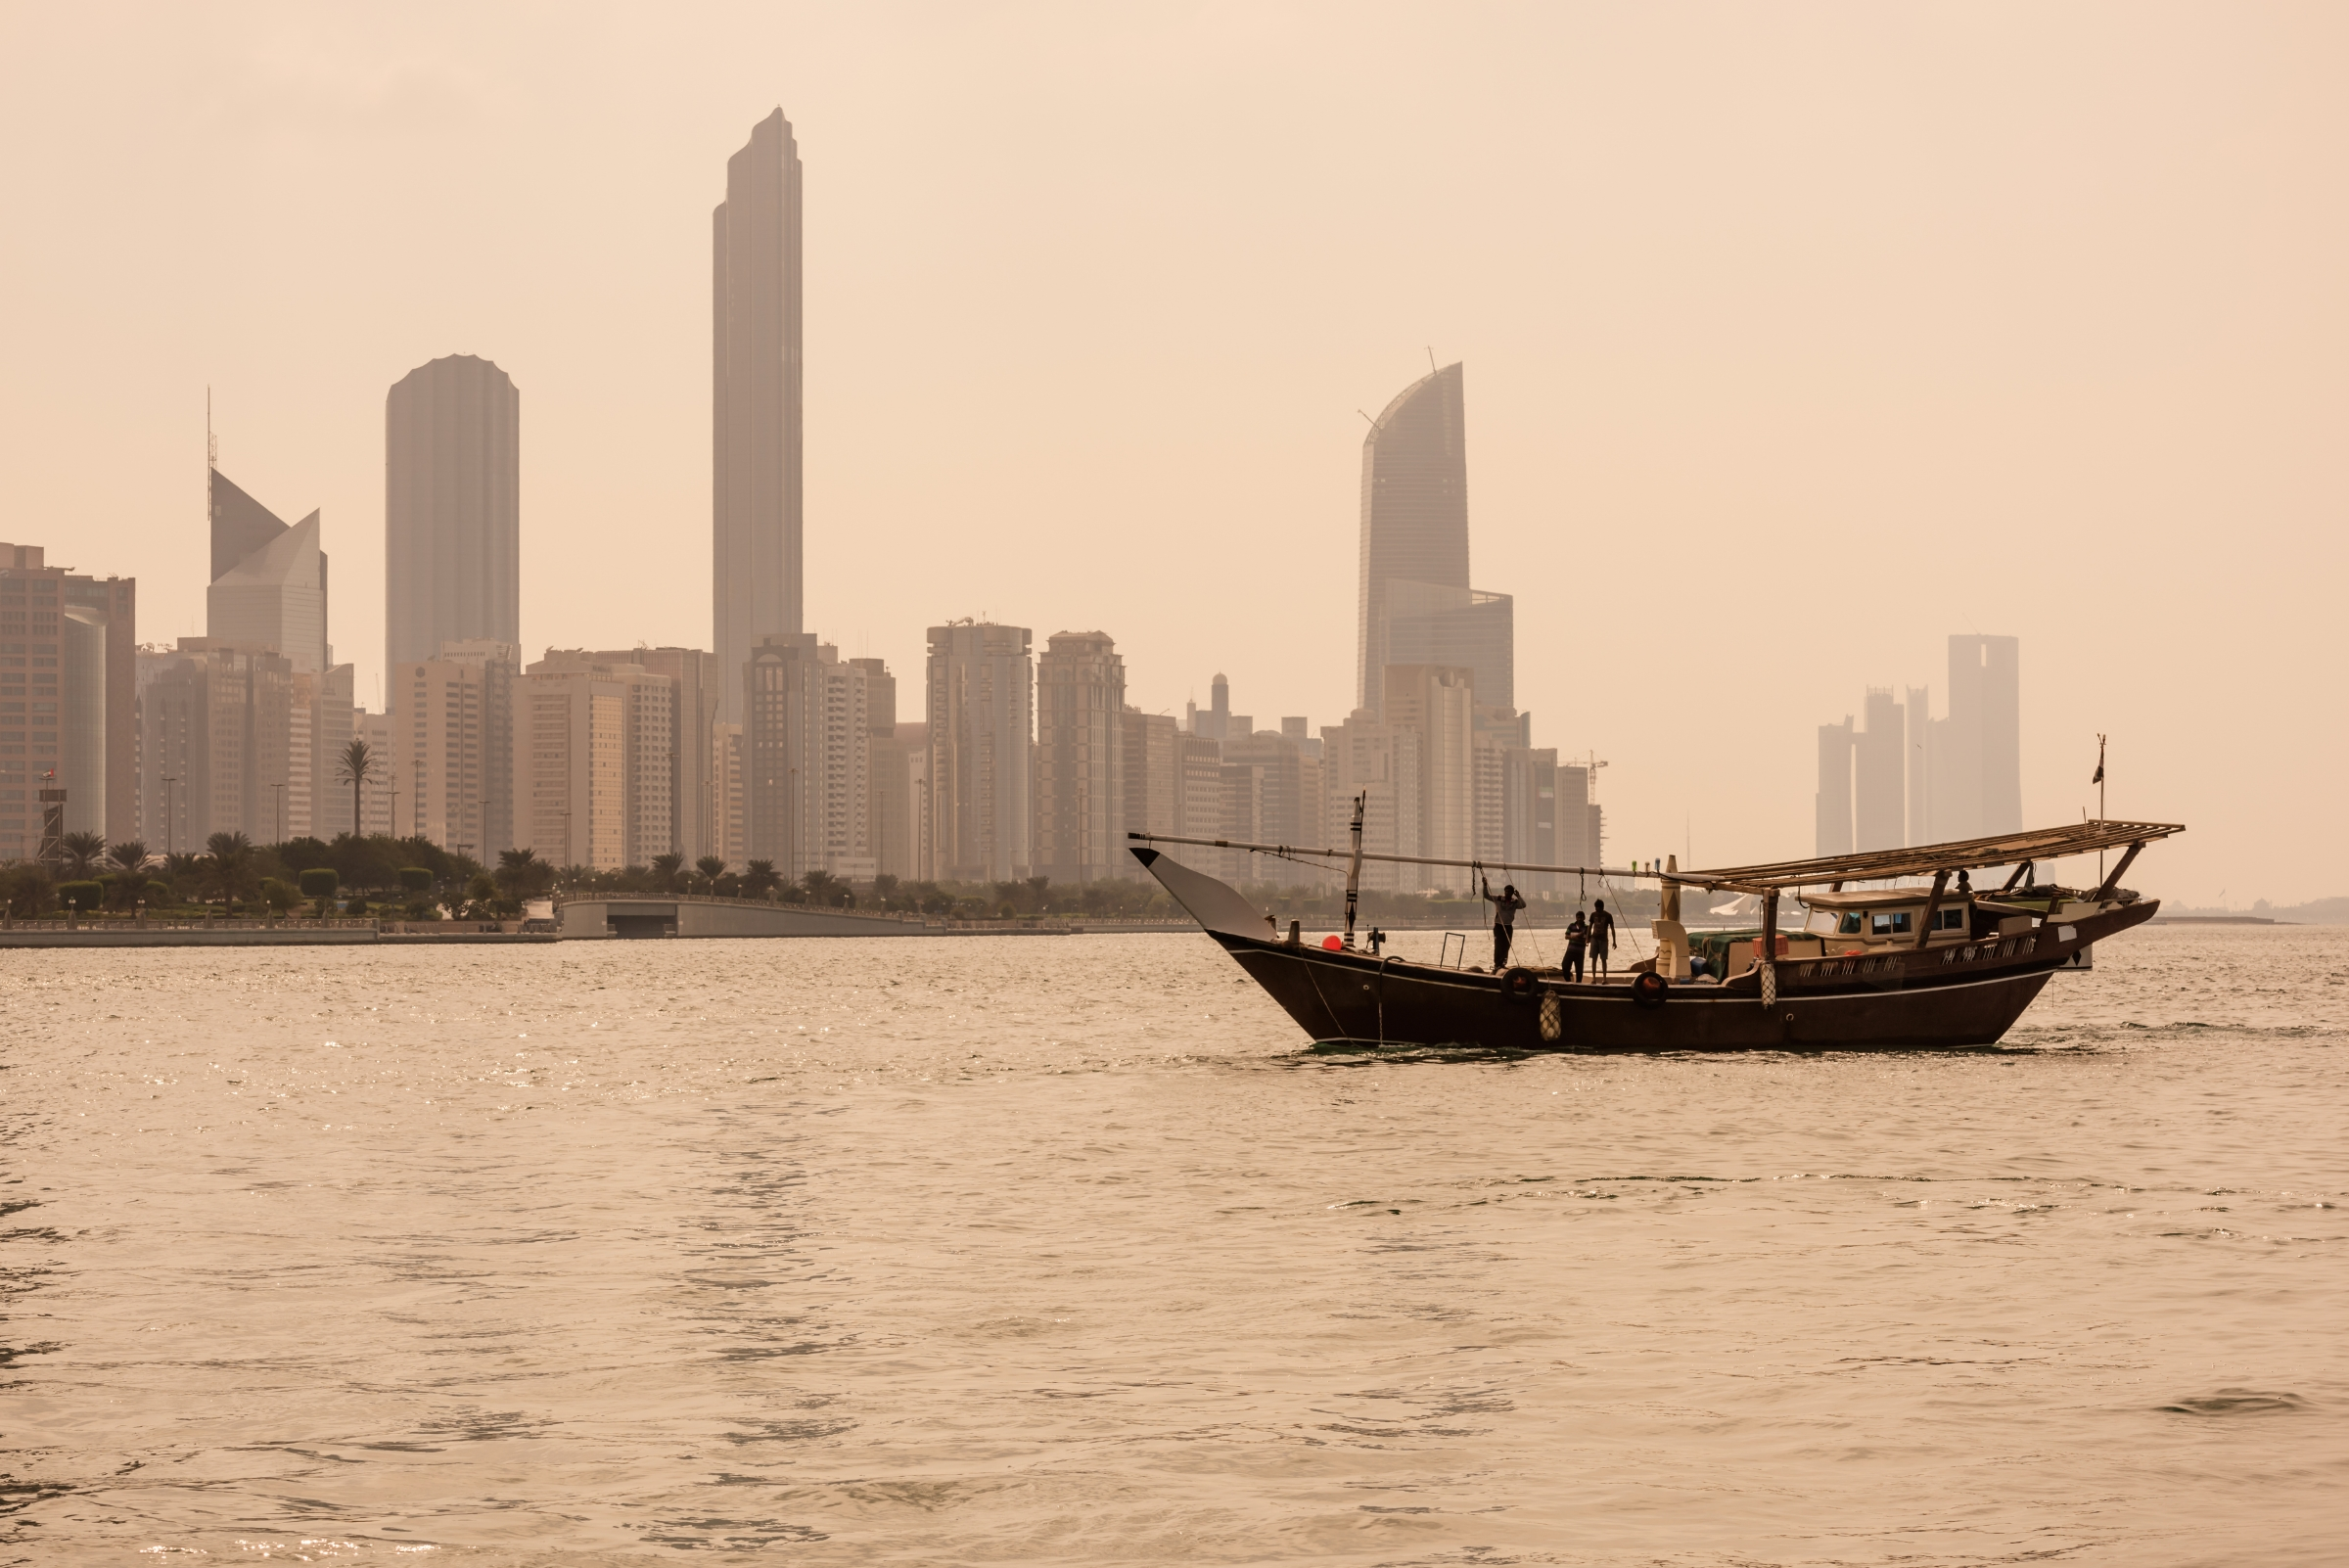 The Abu Dhabi skyline with an old fishing boat.